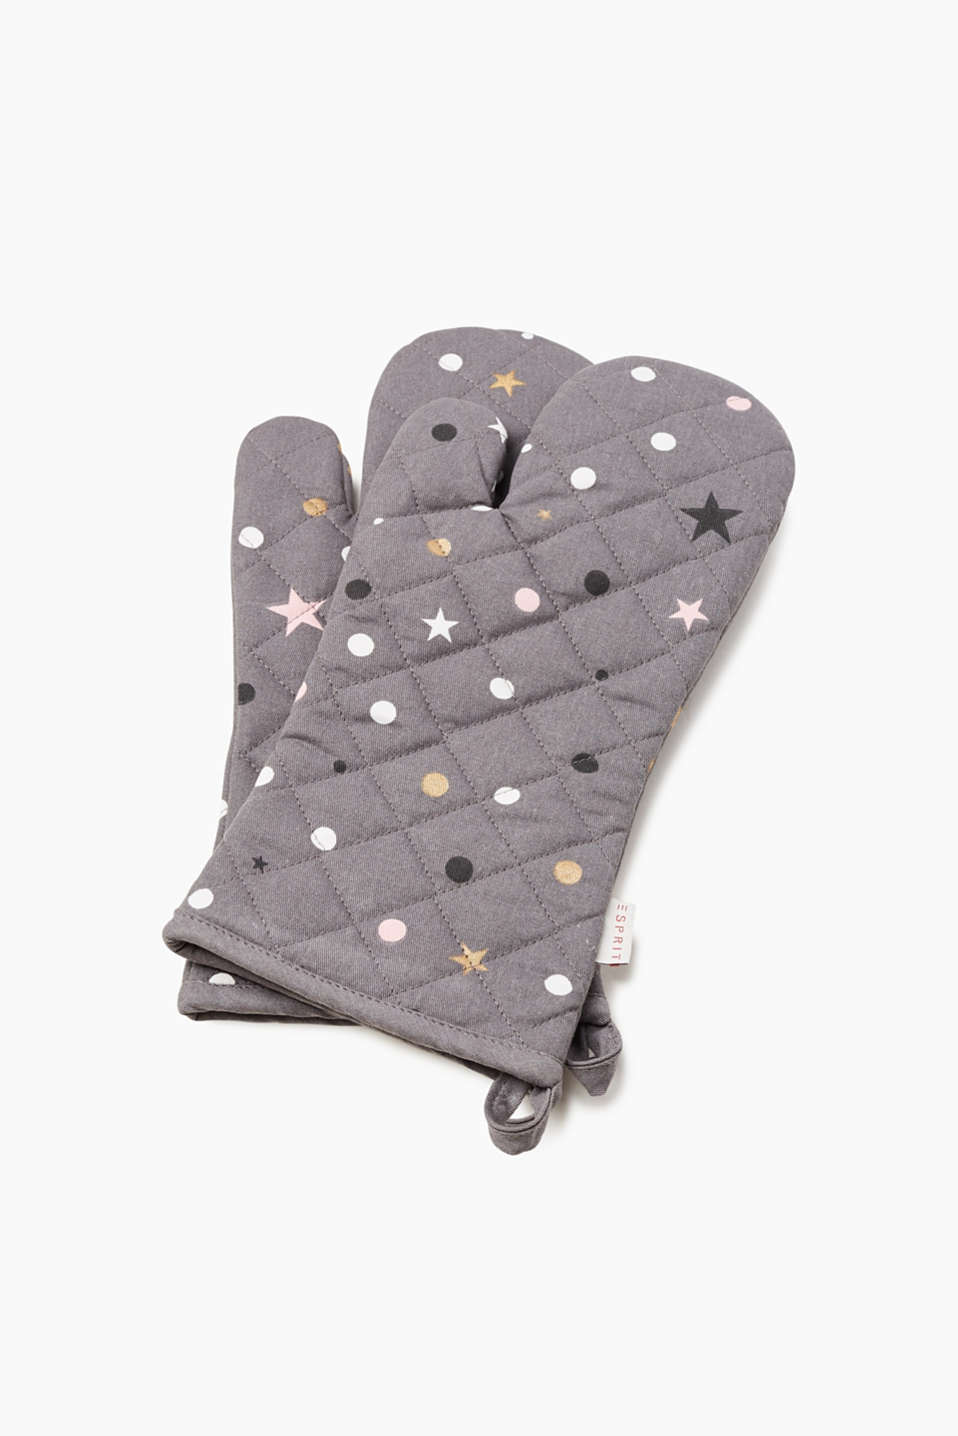 Esprit - 2-piece set of oven gloves with stars